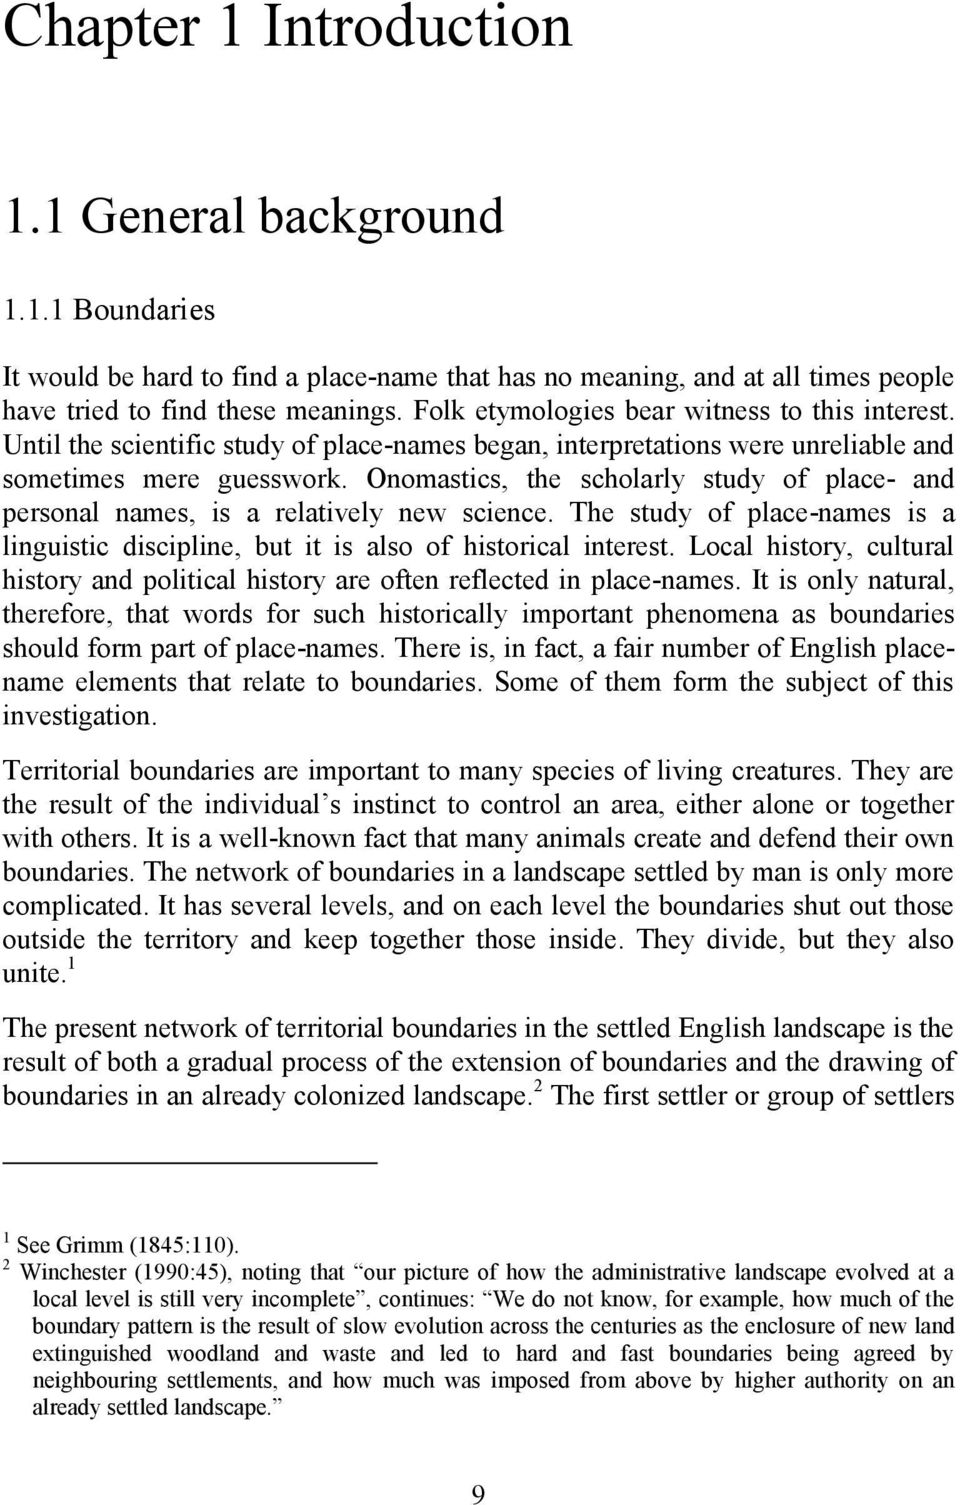 Onomastics, the scholarly study of place- and personal names, is a relatively new science. The study of place-names is a linguistic discipline, but it is also of historical interest.